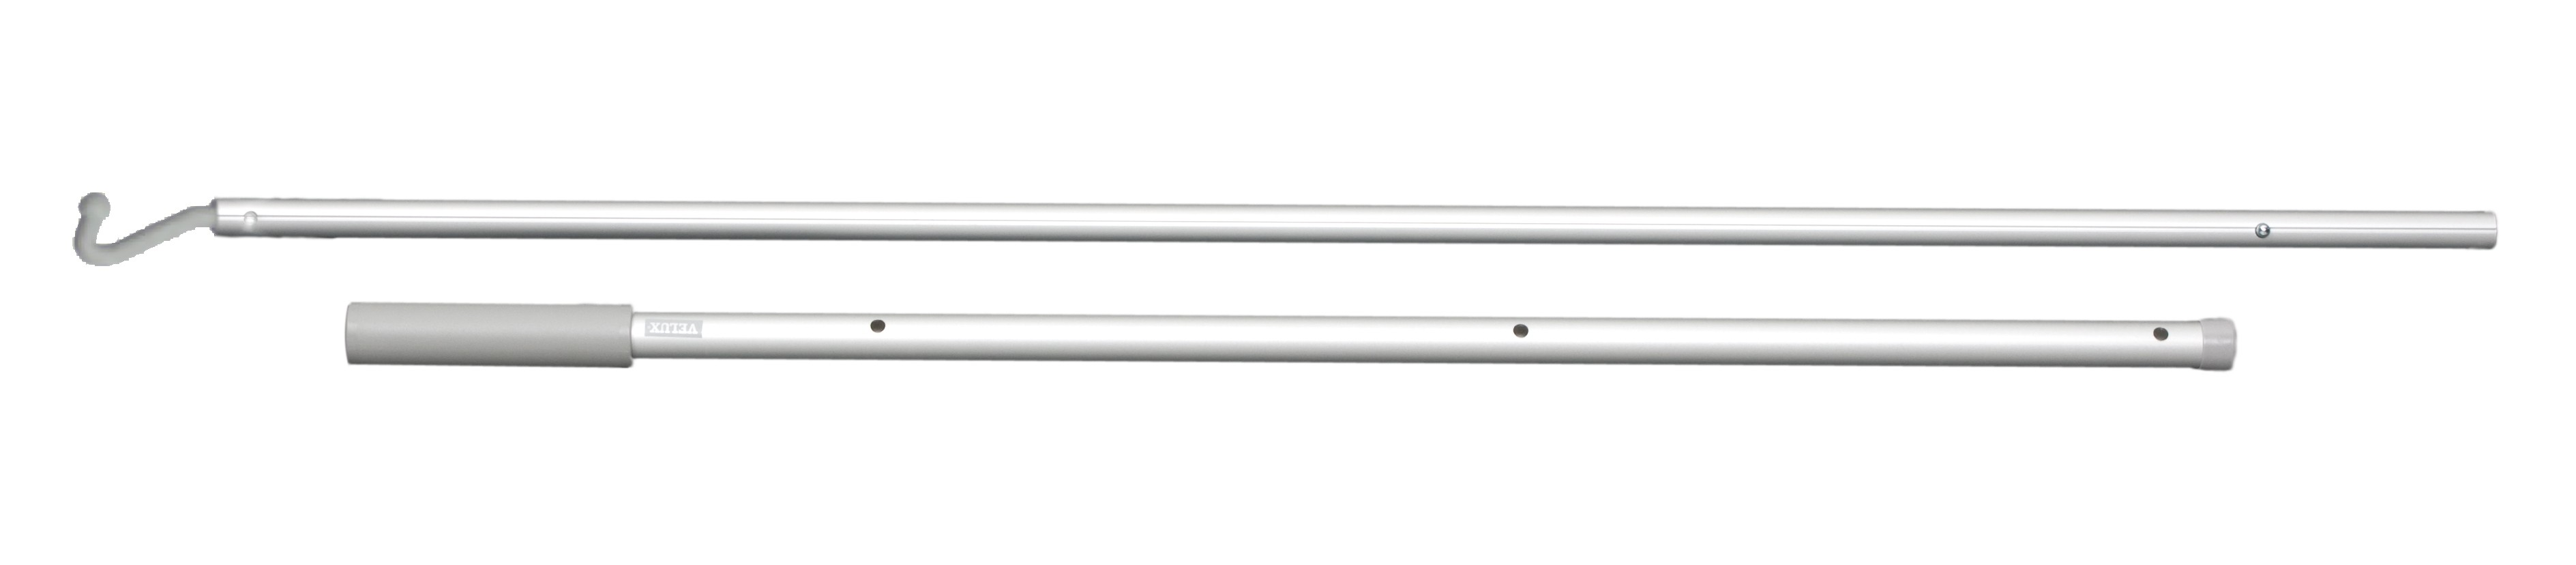 """ZXT 200 - """"7 Hook"""" Rod for New Manual Blinds"""